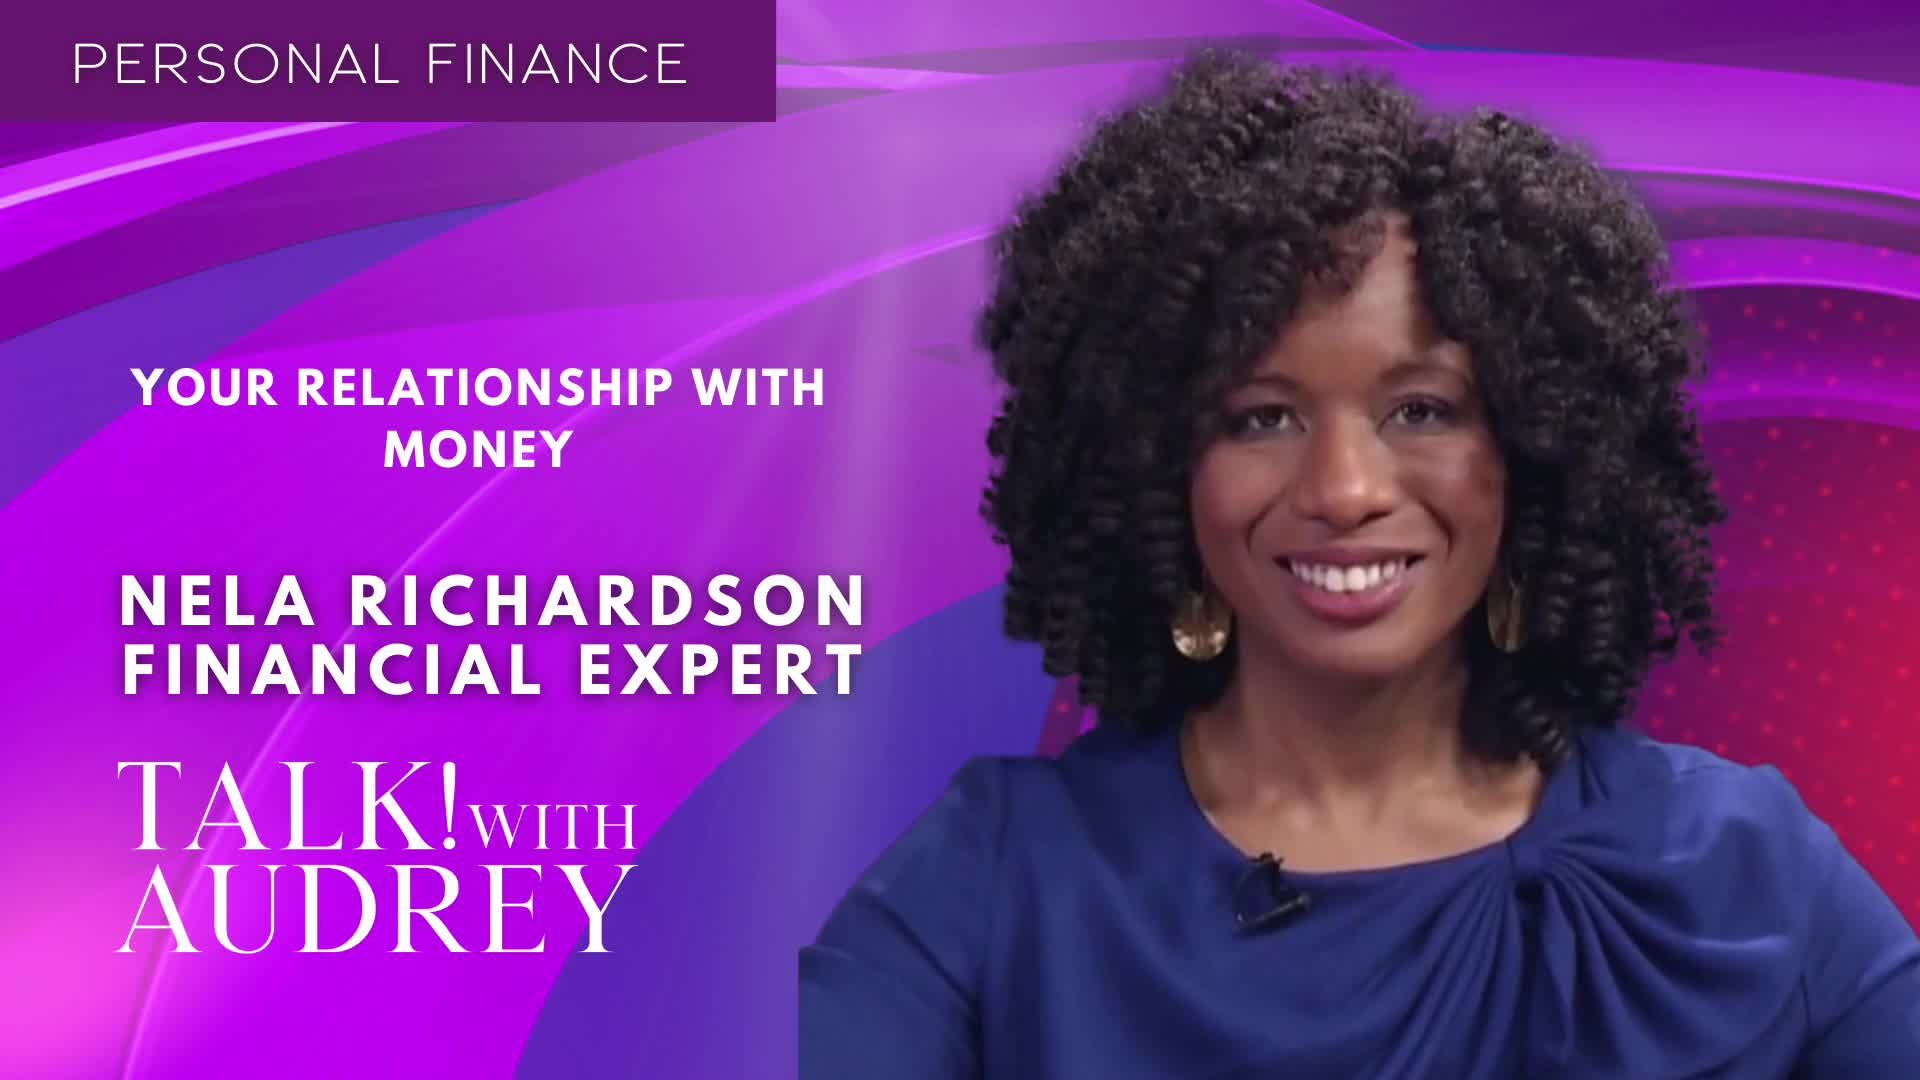 TALK! with AUDREY - Nela Richardson, Financial Expert - Your Relationship With Money